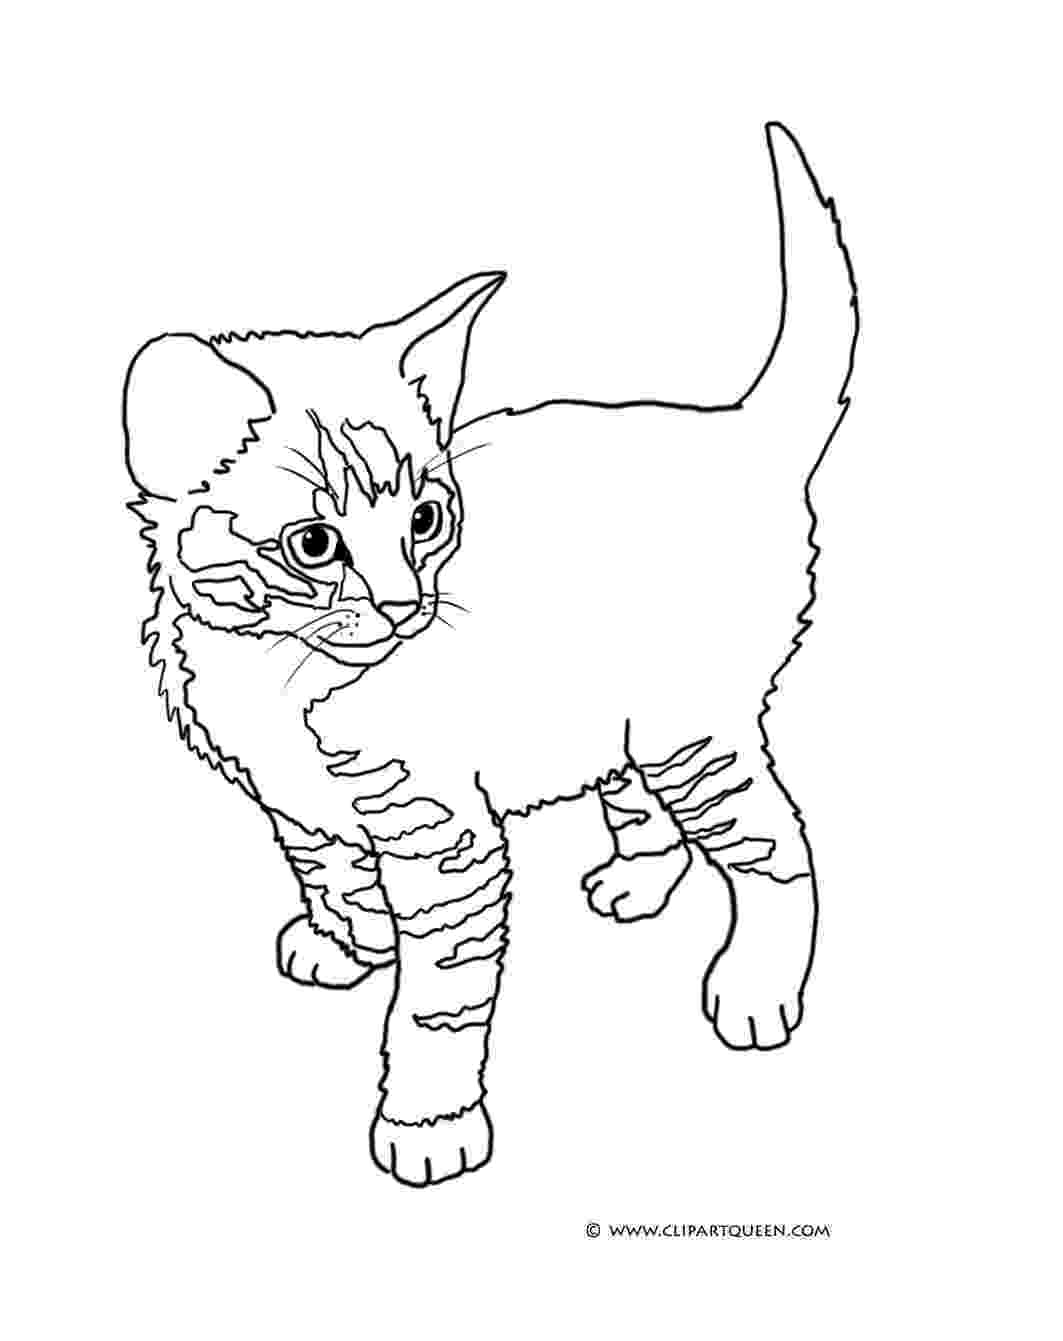 coloring pages of kittens to print free printable cat coloring pages for kids coloring to pages kittens print of